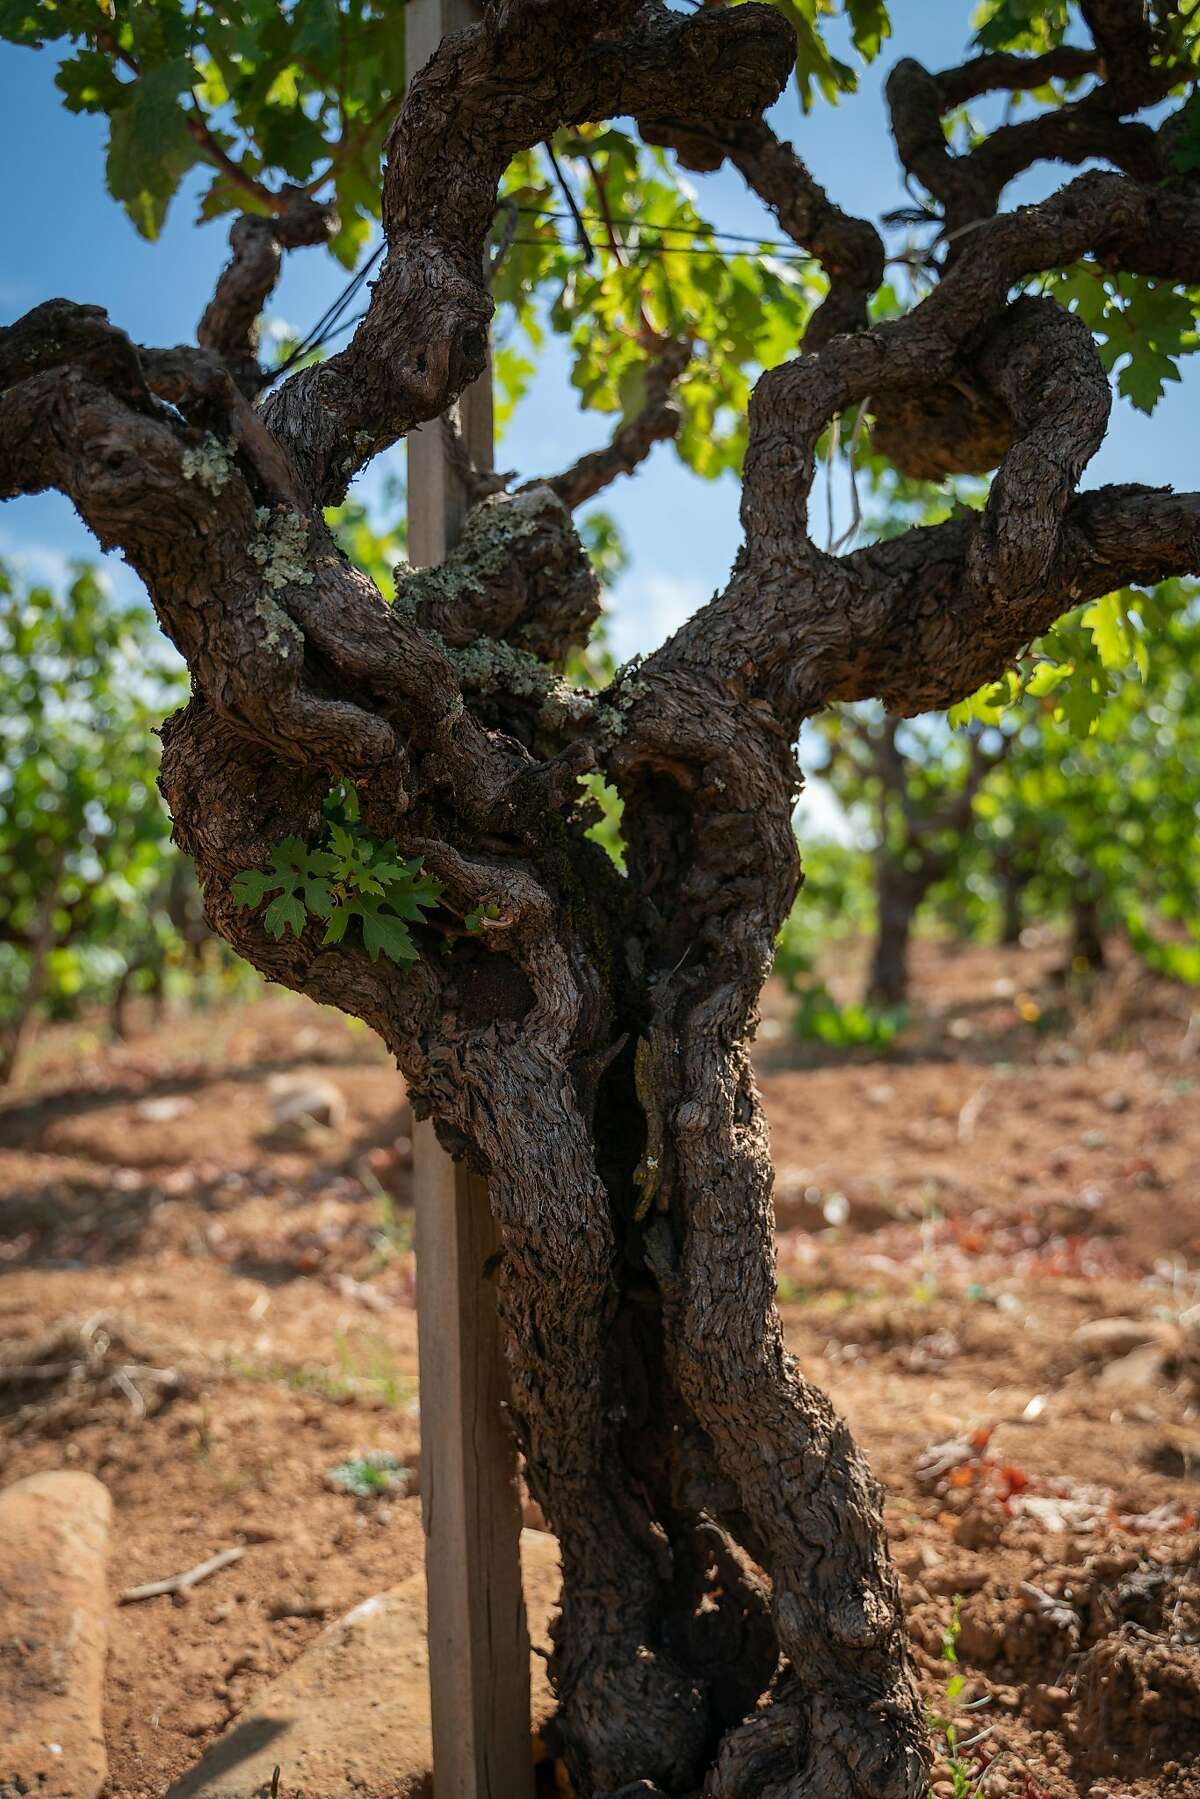 The split trunk of a 126-year-old dry-farmed Zinfandel vine is seen at Monte Rosso Vineyard in Sonoma, Calif., on Thursday, July 25, 2019.